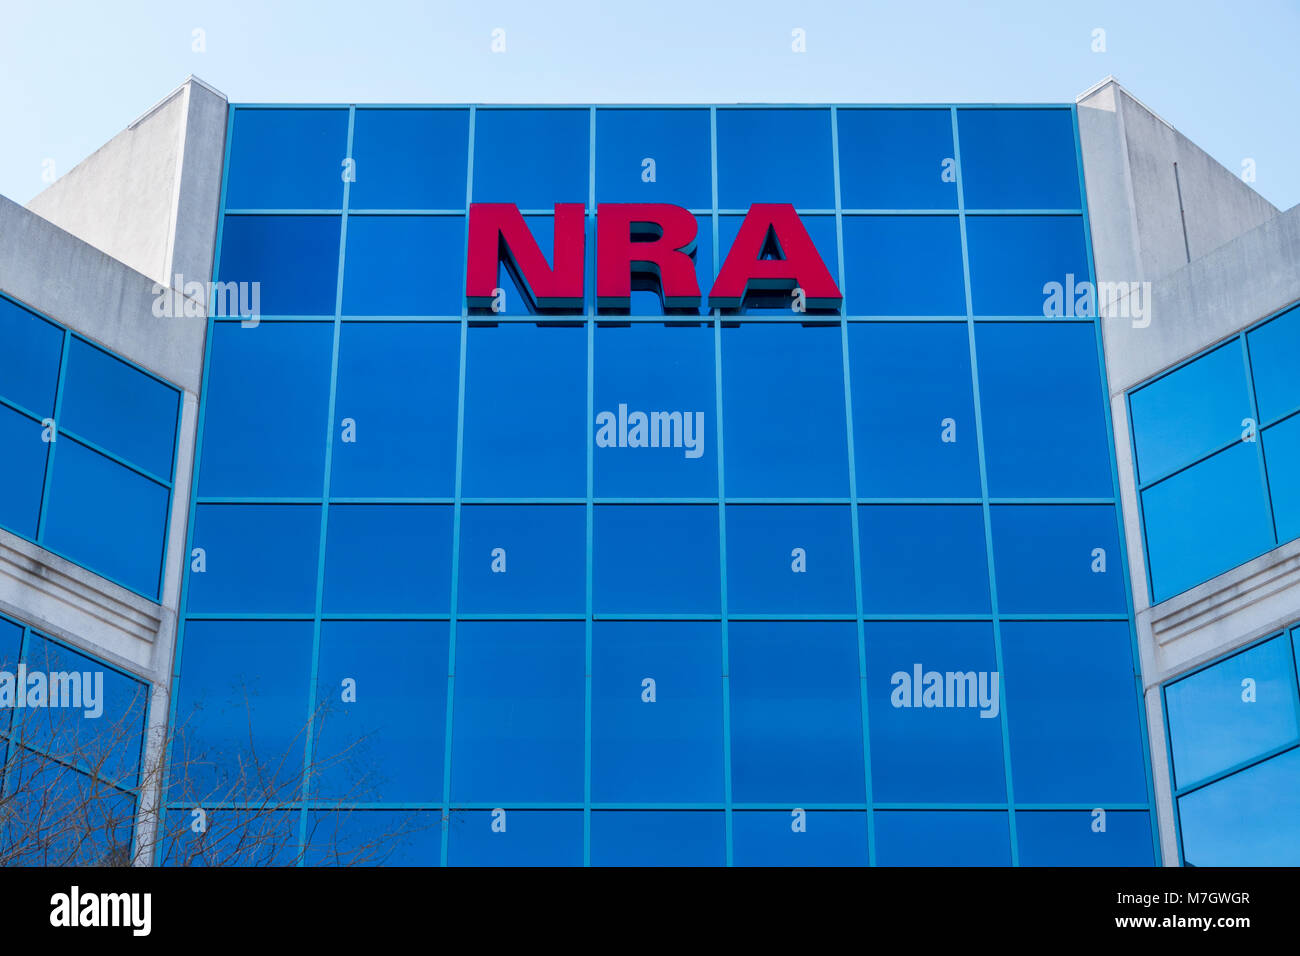 e995117b27b NRA National Rifle Association headquarters in Fairfax Virginia VA gun  rights lobbying group in USA -